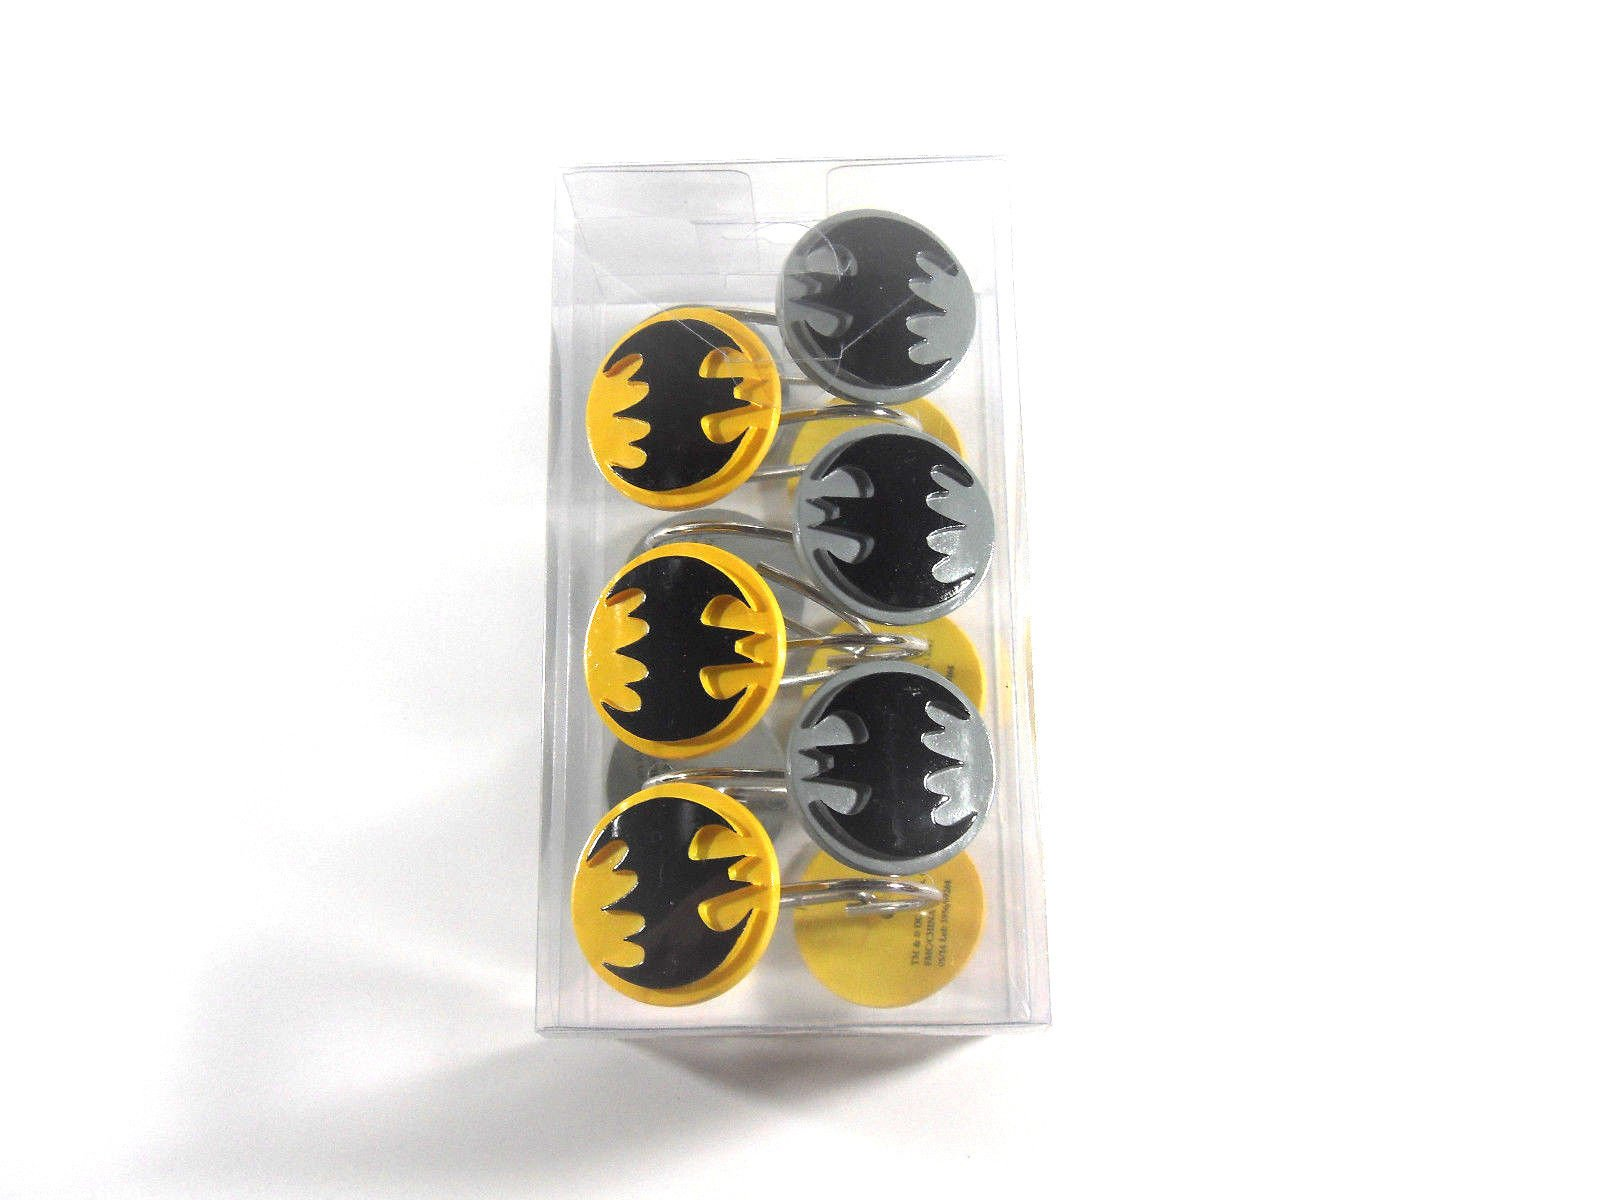 Batman Bathroom Set, Shower Curtain, Hooks, Bath Rug, Bath Towel, Pump Lotion, Toothbrush Holder by Batman (Image #2)